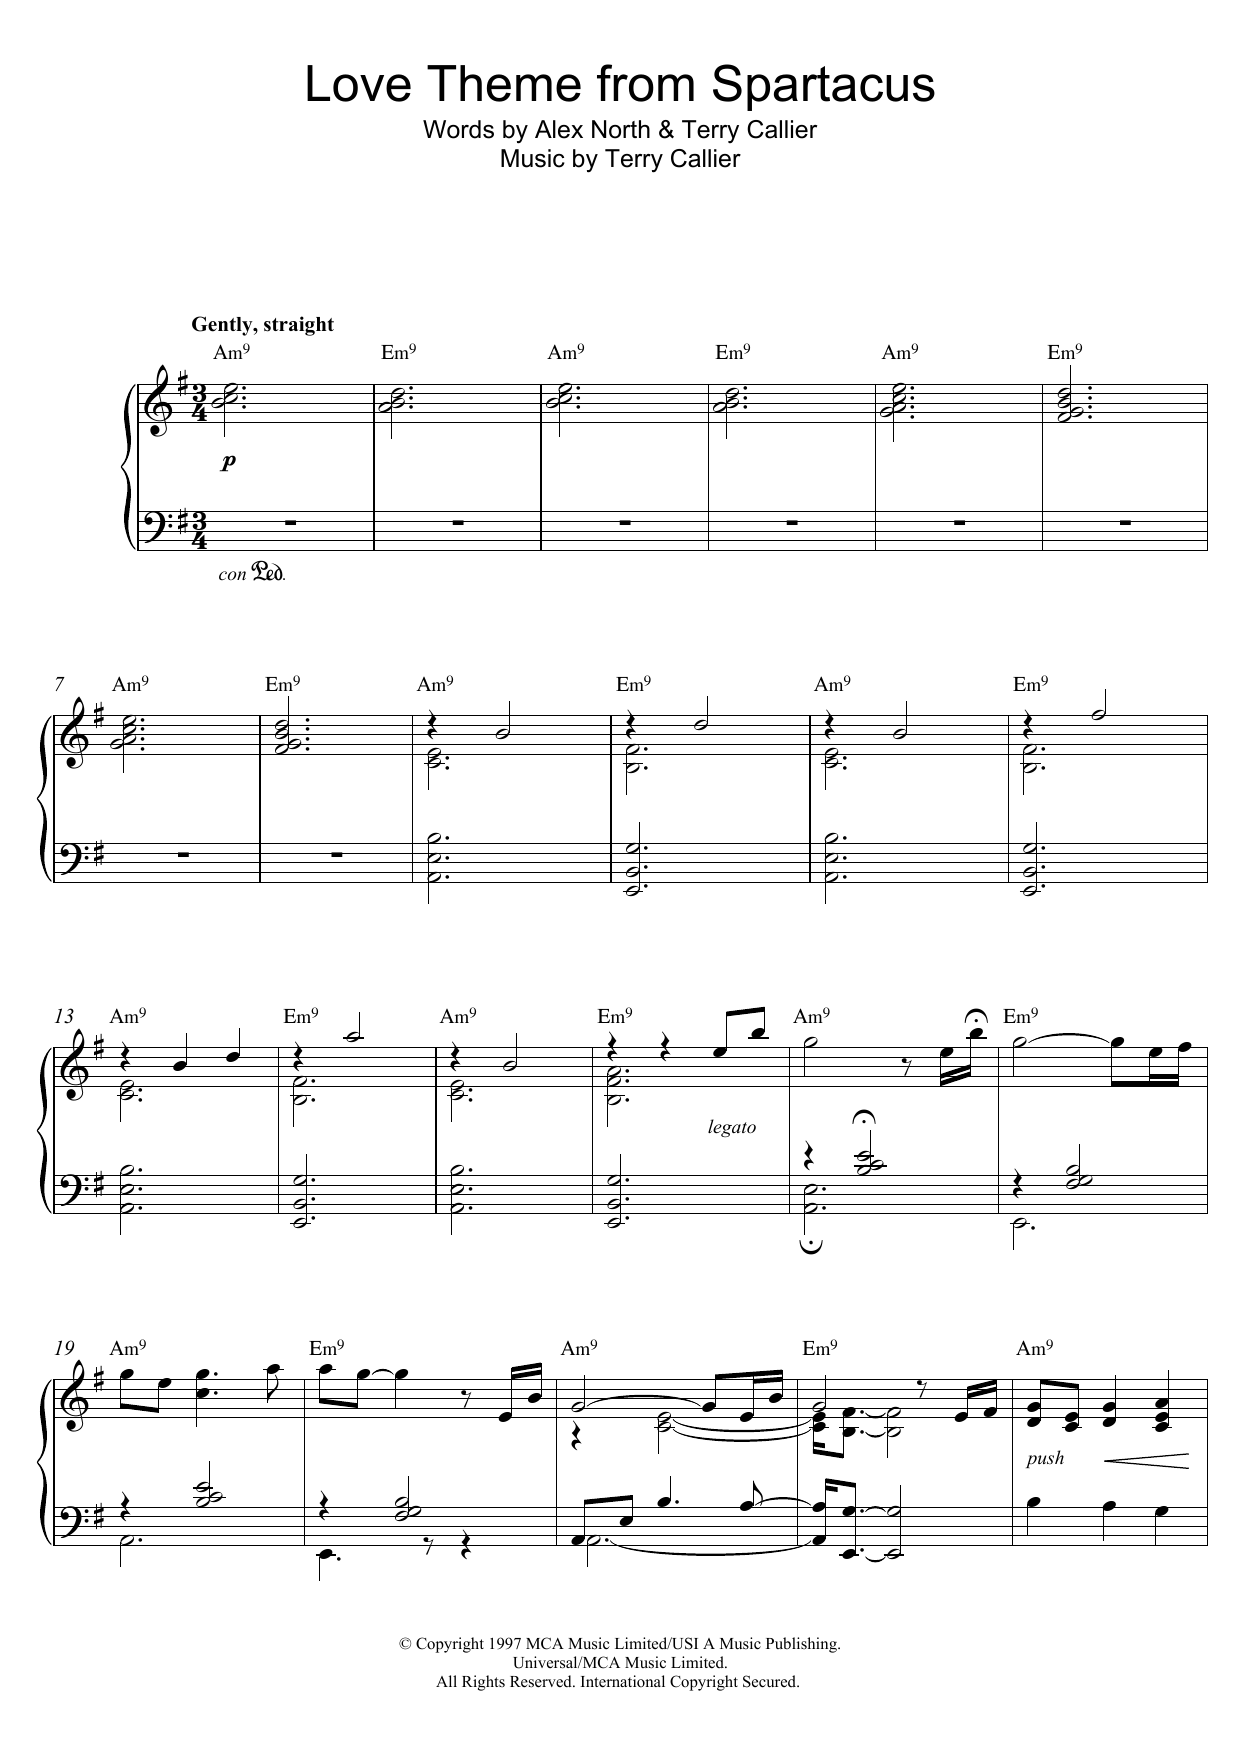 Love Theme From Spartacus Sheet Music